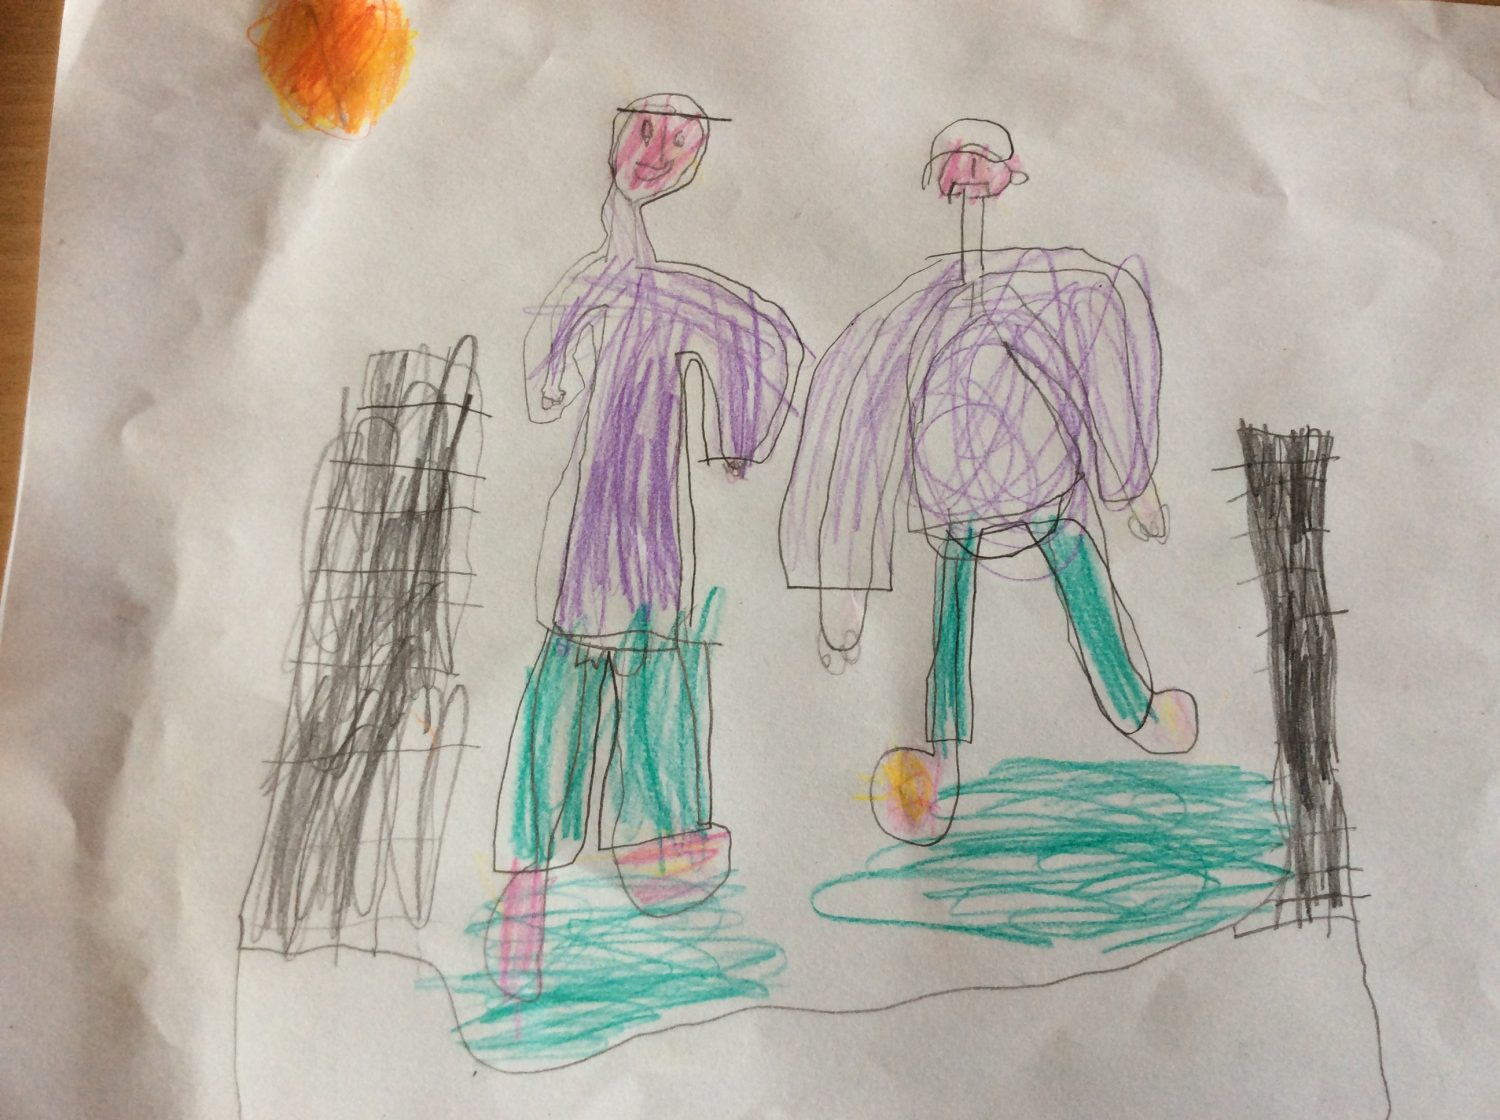 childrens drawing I helped my cousin by doing funny noises and he laughed.